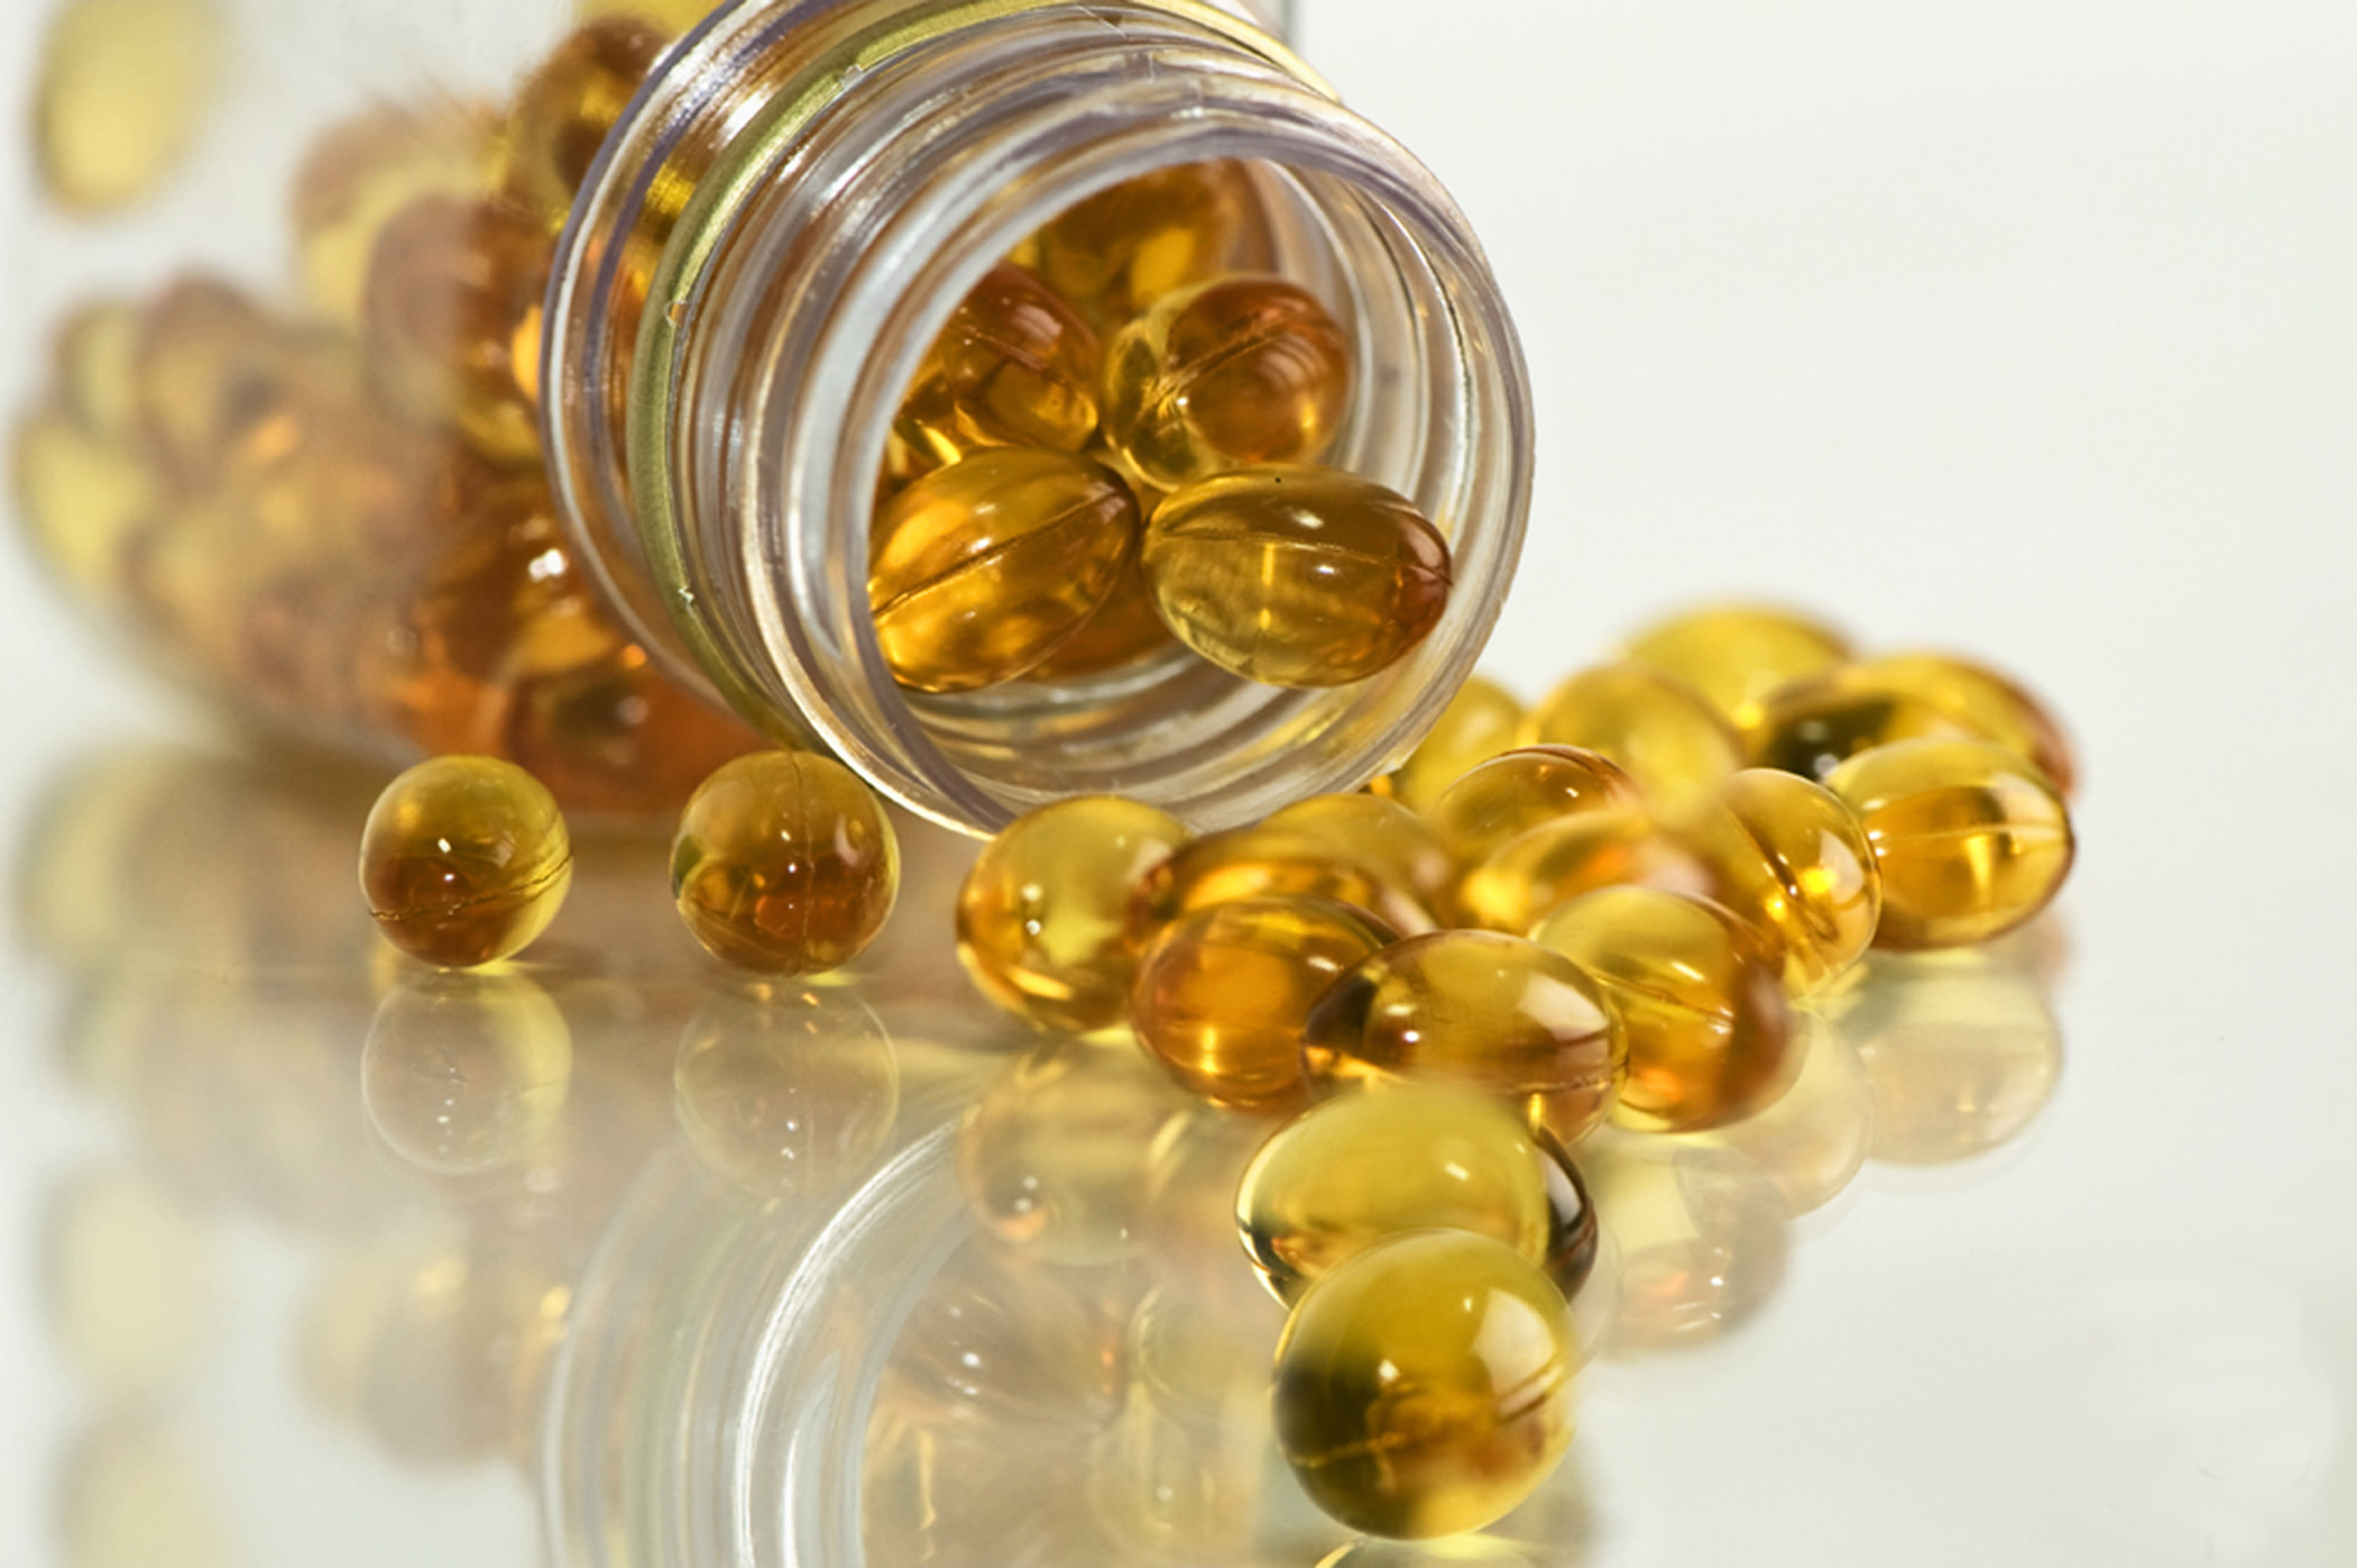 Fish Oil and Vitamin D Supplements May Not Help Prevent Heart Attacks and Cancer, Study Says